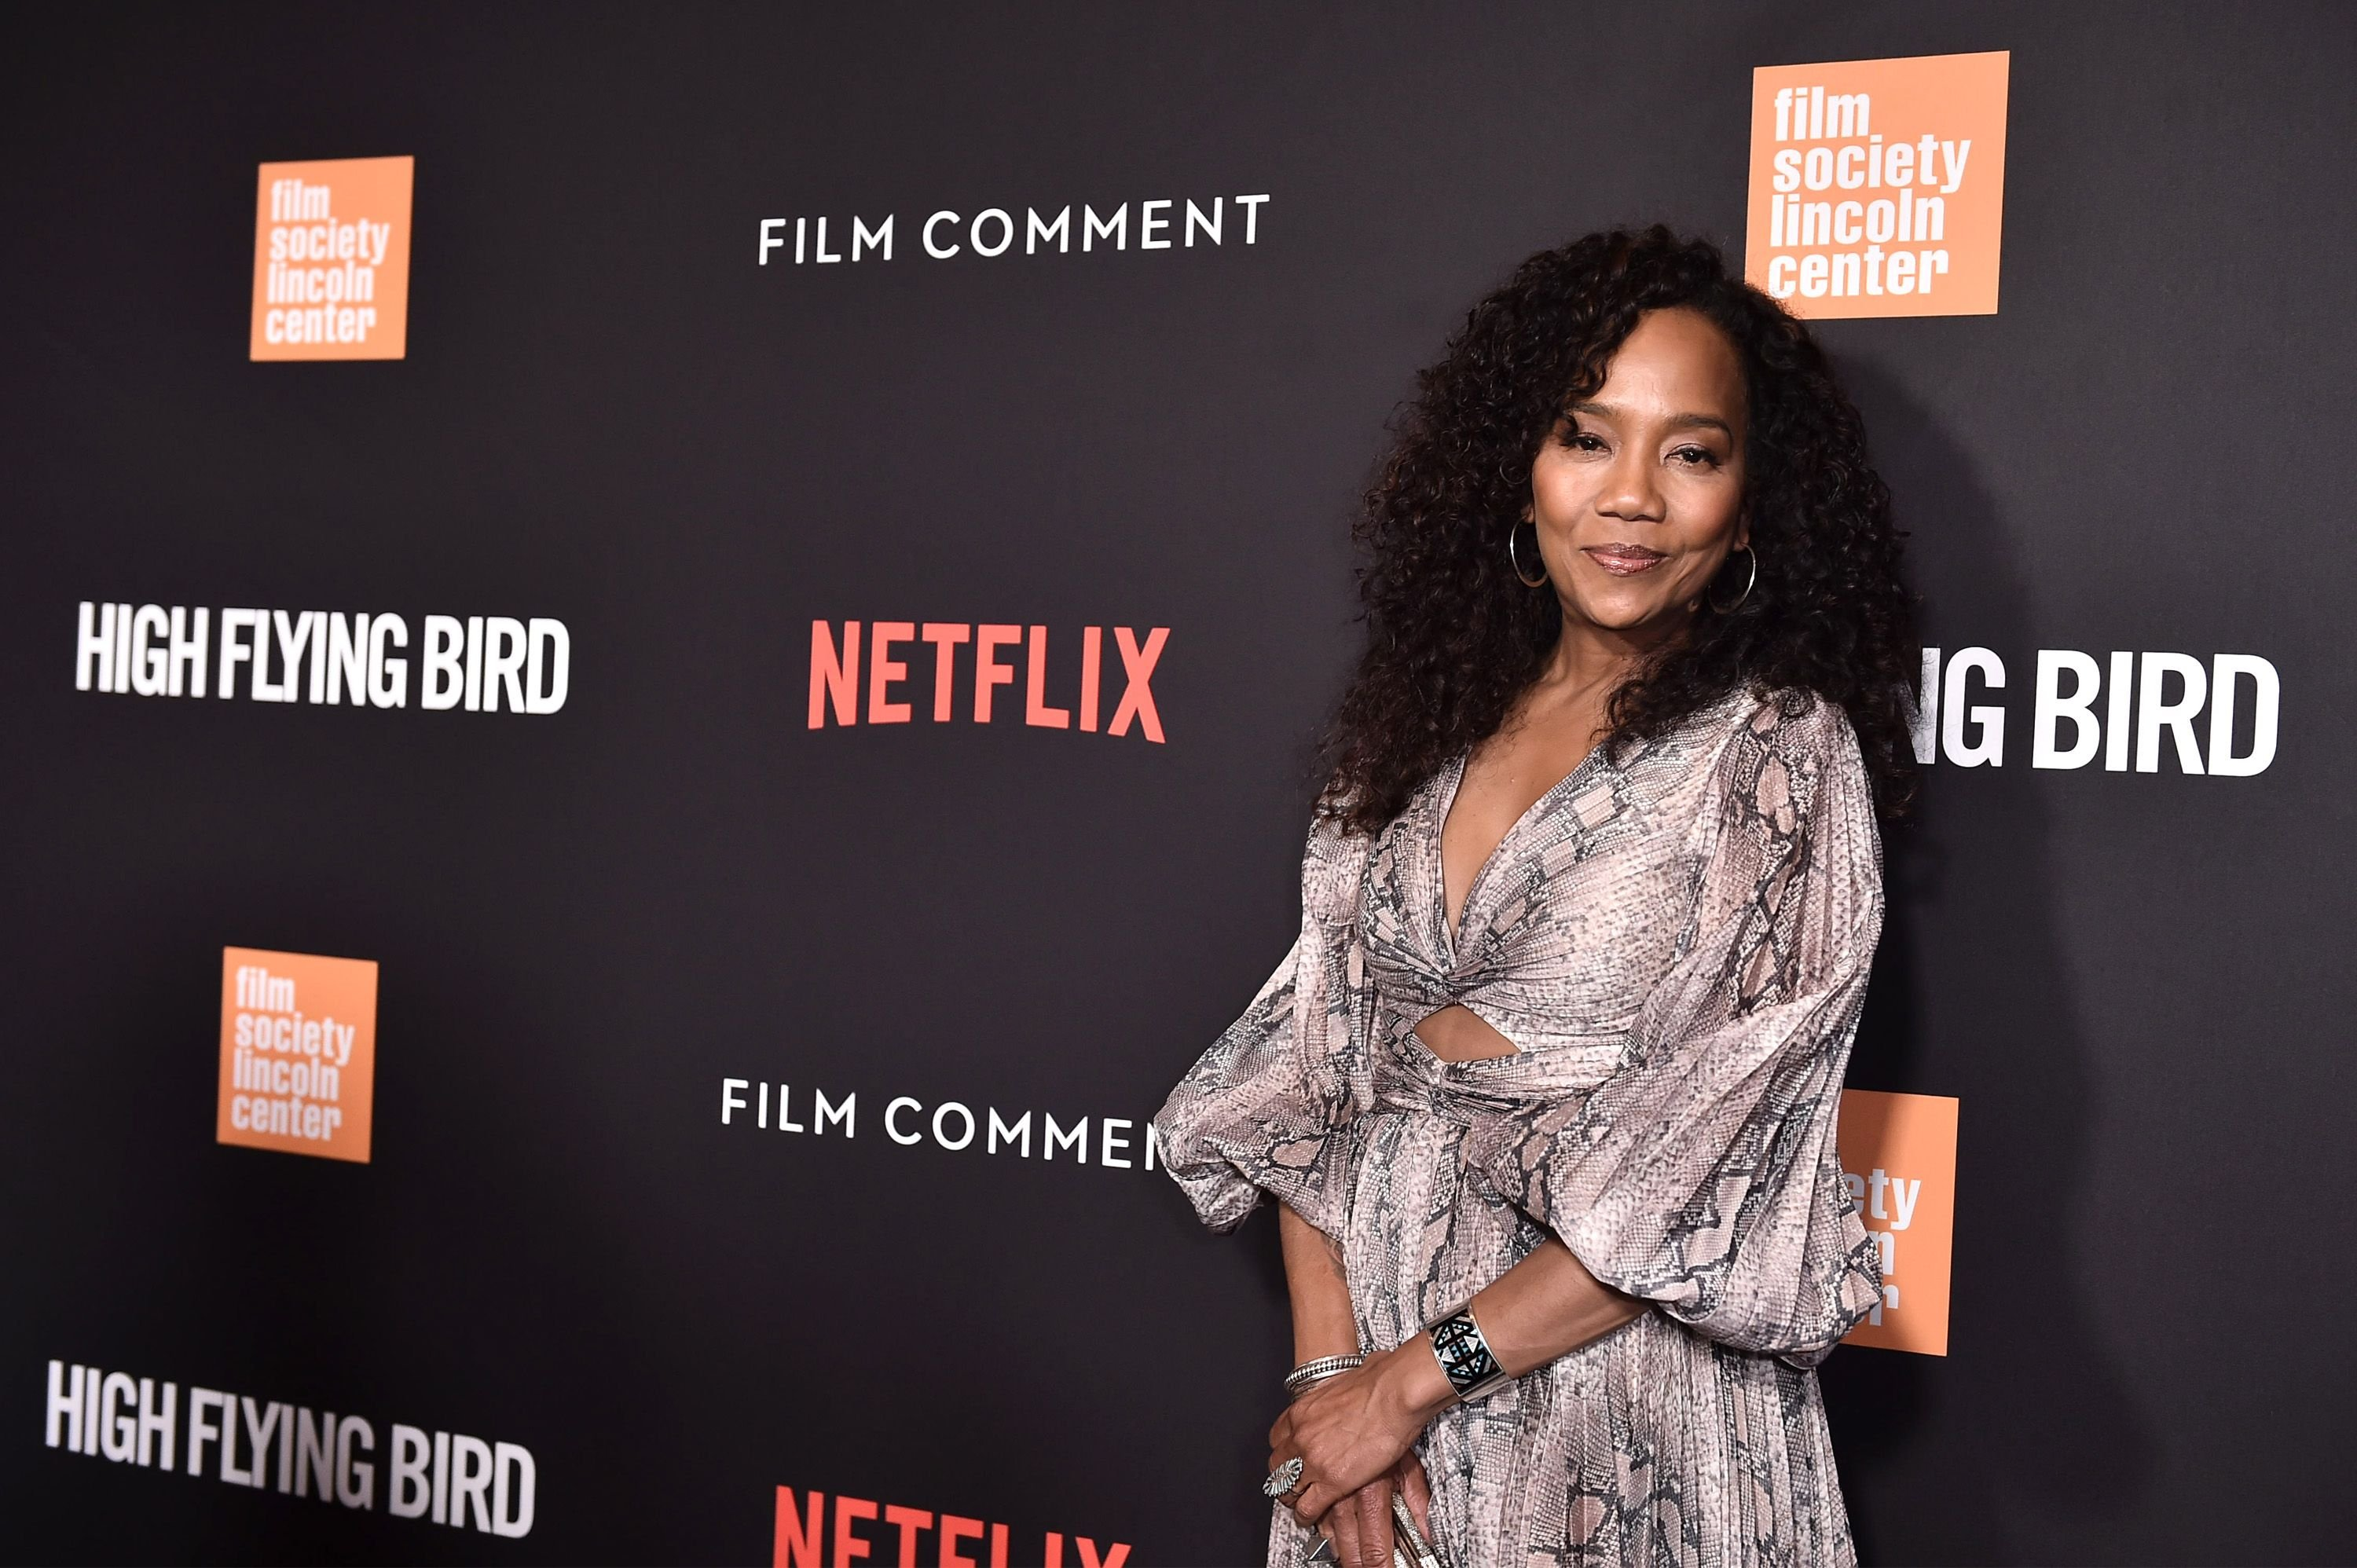 """Sonja Sohn at the """"High Flying Bird"""" special screening in February 2019 in New York   Source: Getty Images"""